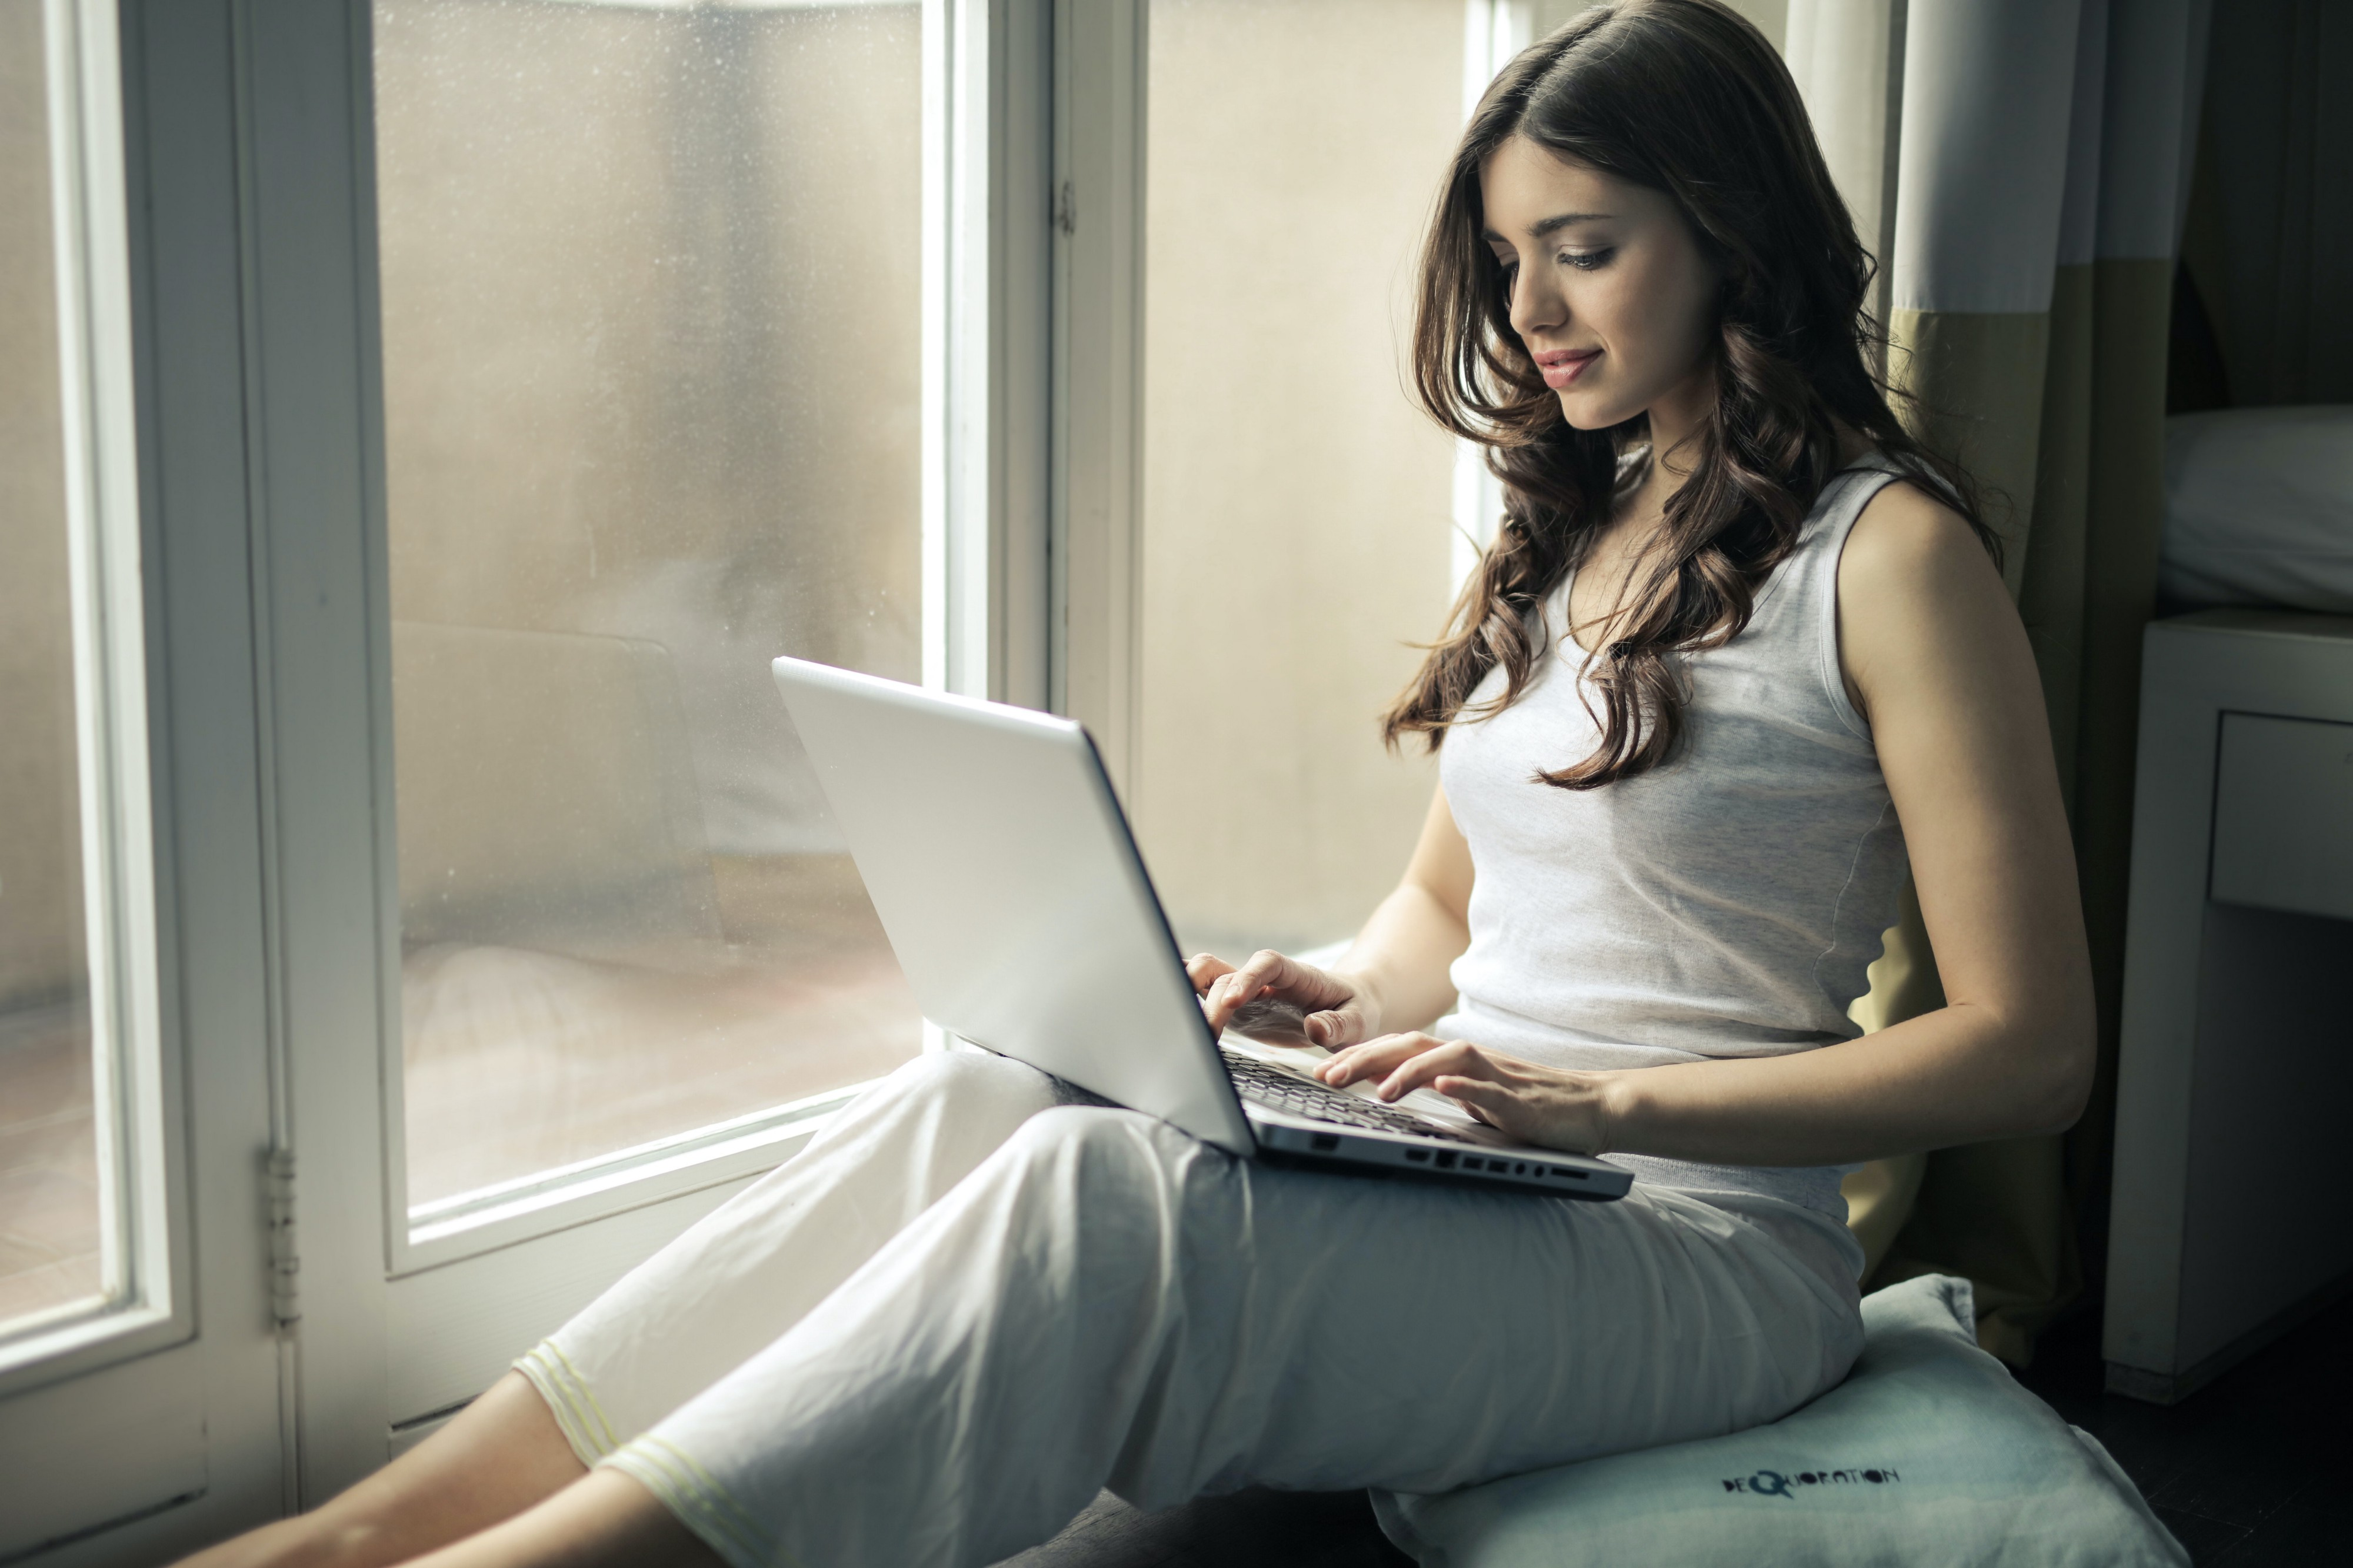 Woman sitting in a window typing on her laptop.